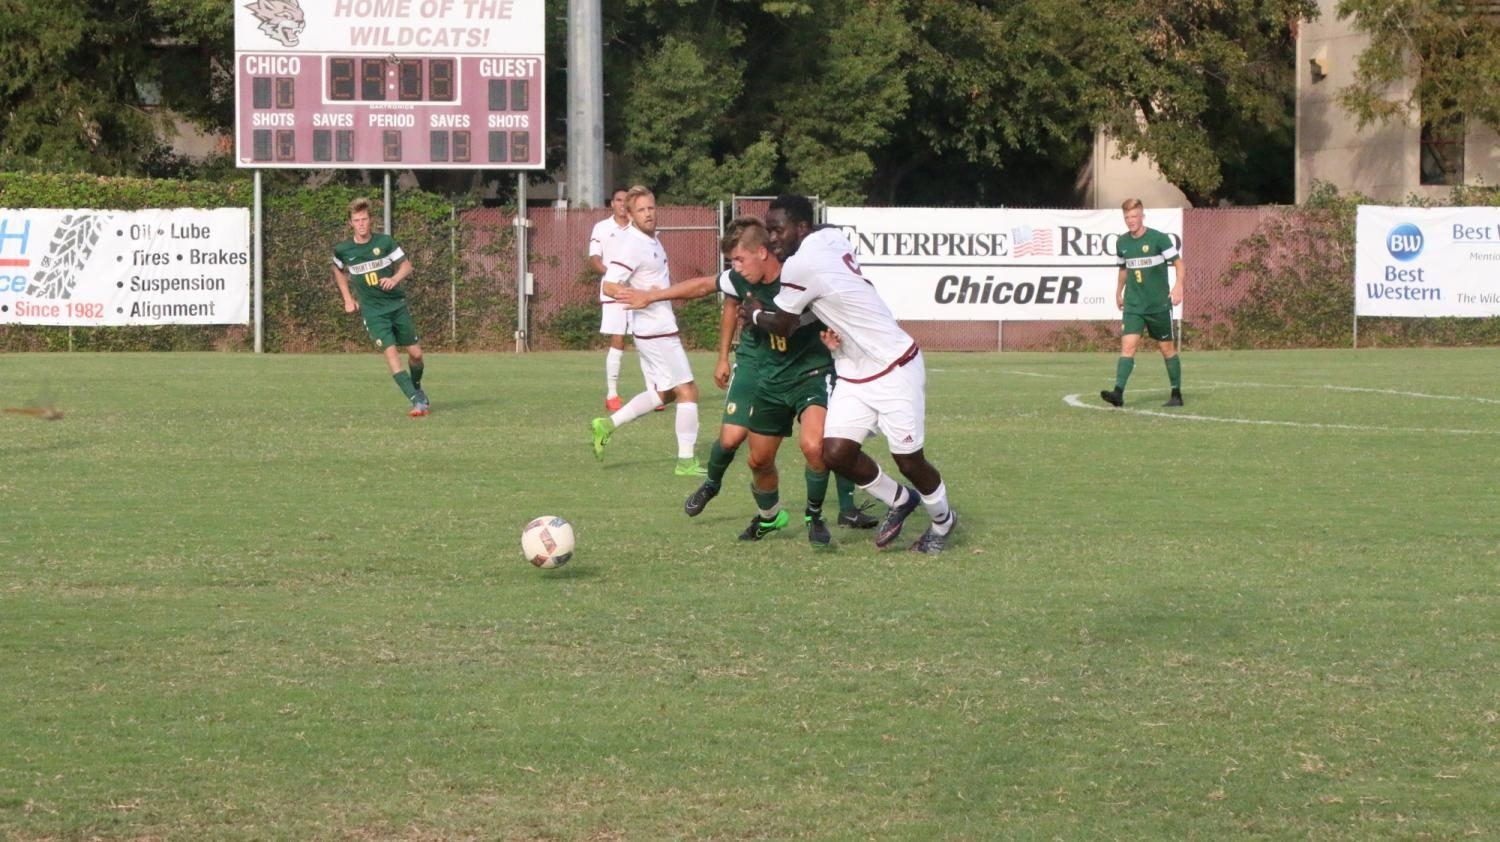 Junior forward Jeremiah Egujie fights for the ball against a defender.